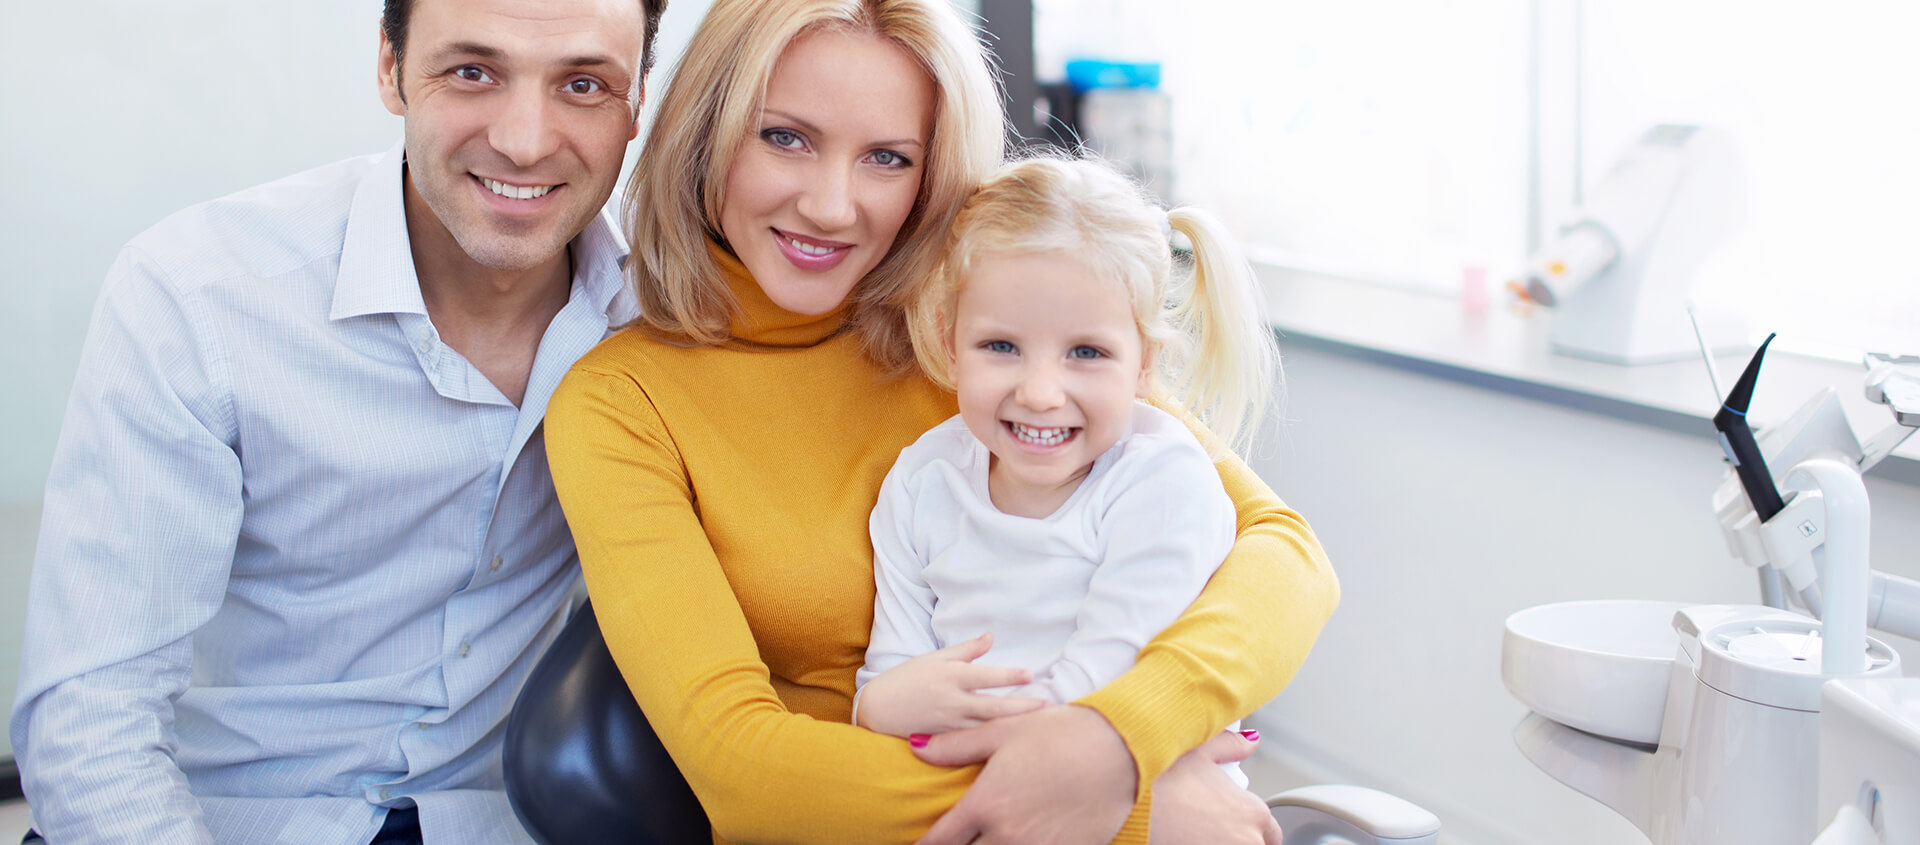 Your Search for a Desi Dental Office in Plano, TX Area is Over! Our Dental Family Welcomes You and Your Family